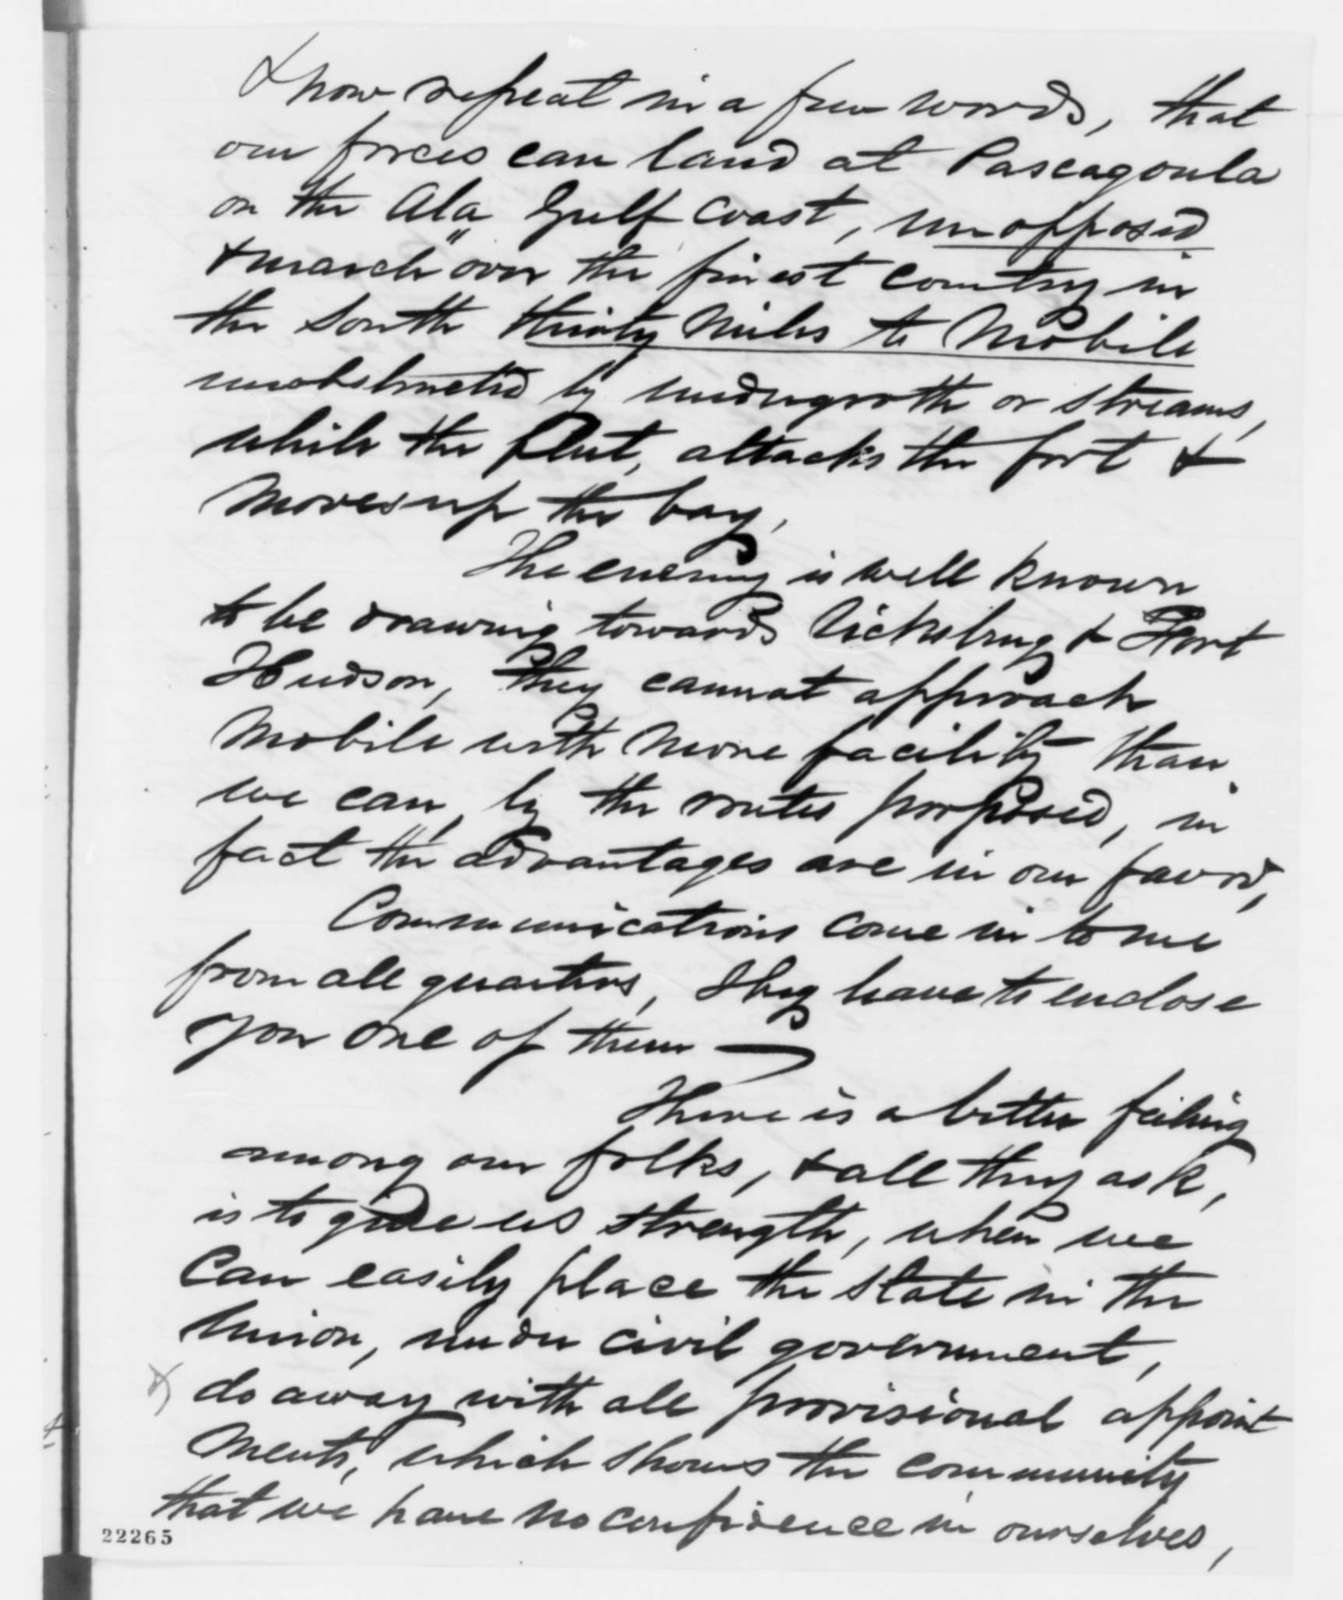 Cuthbert Bullitt to Abraham Lincoln, Saturday, March 07, 1863  (Appreciation for his appointment)